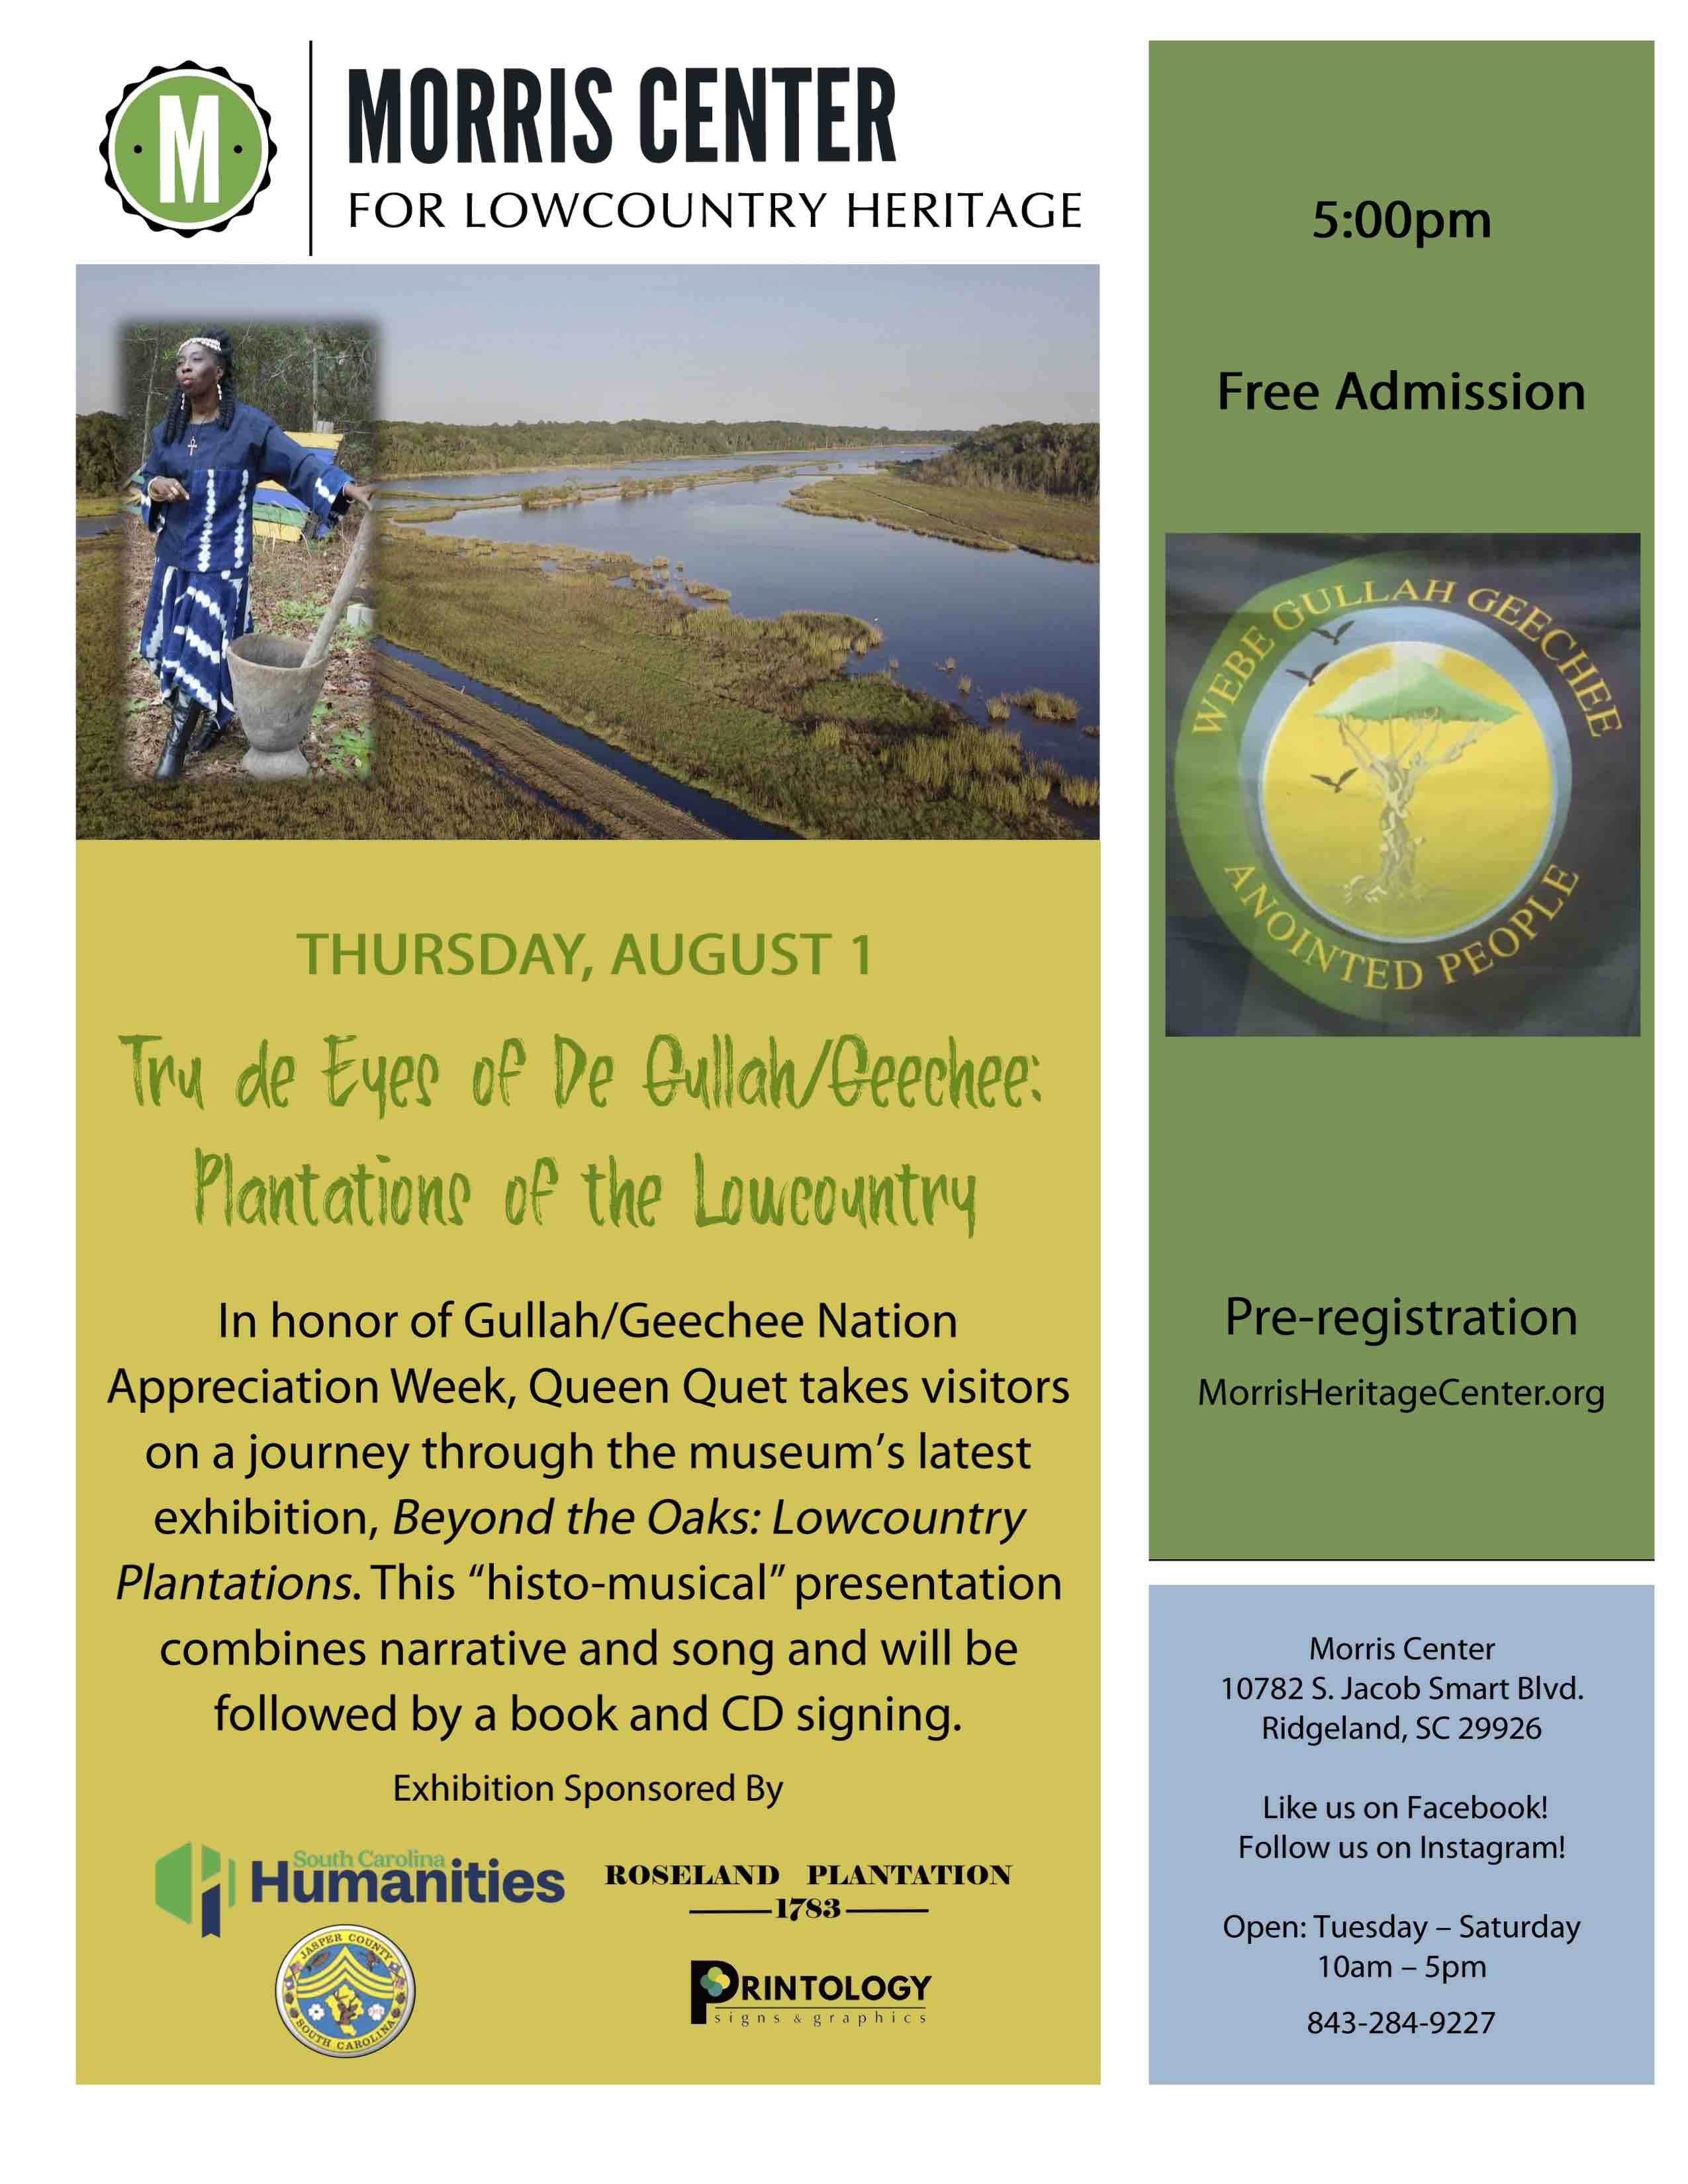 Tru de Eyes of the Gullah/Geechee: Plantations of the Lowcountry